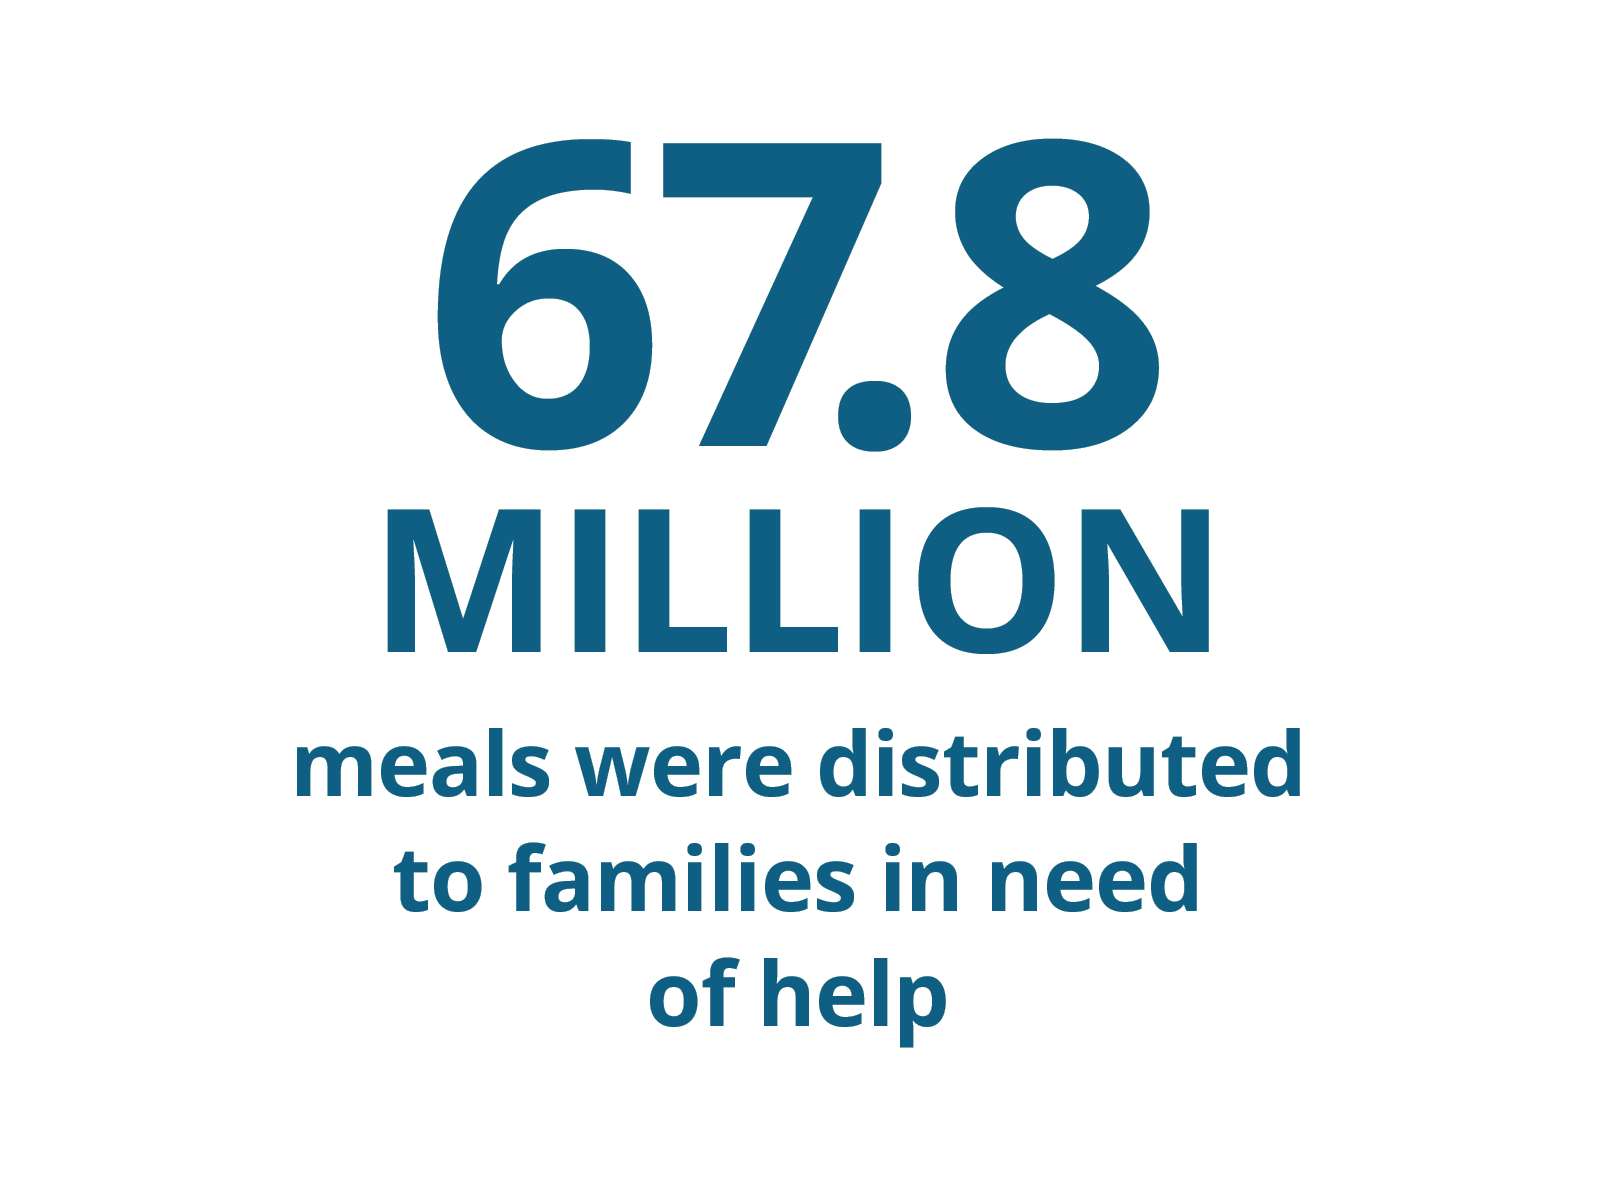 67.8 million meals were distributed to families in need of help